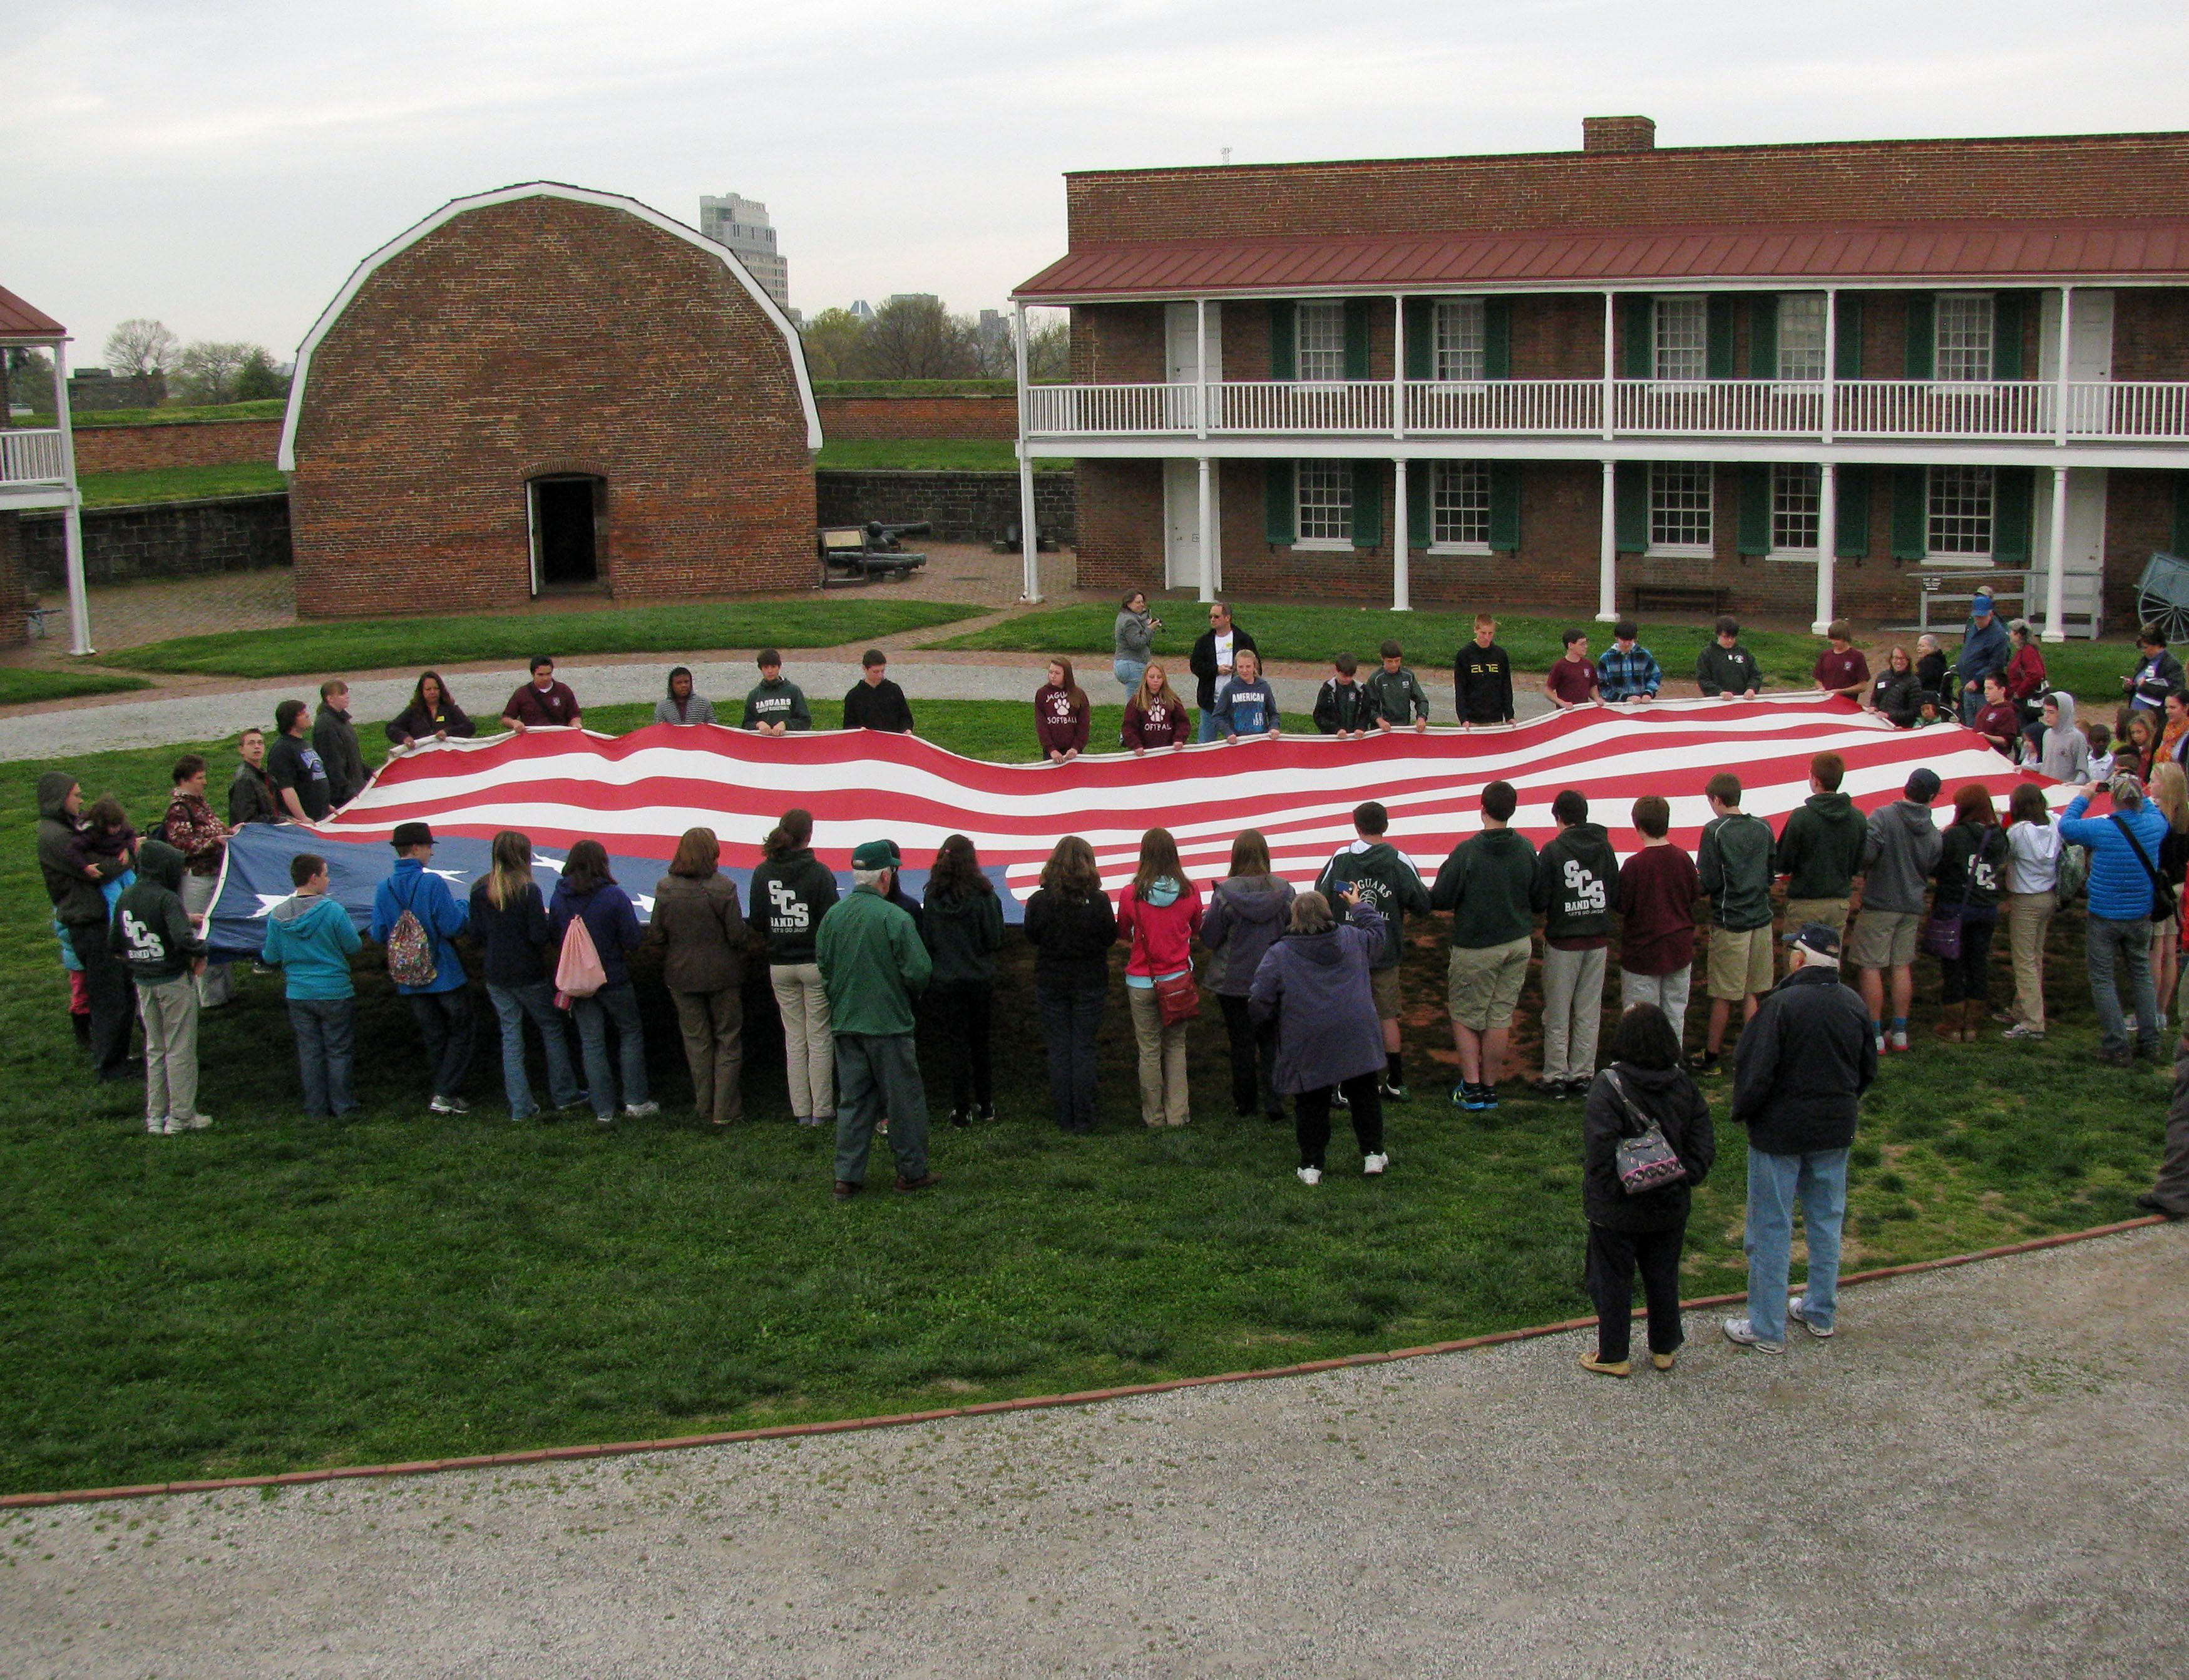 A full-size replica of the Fort McHenry flag unrolled at the parade ground.